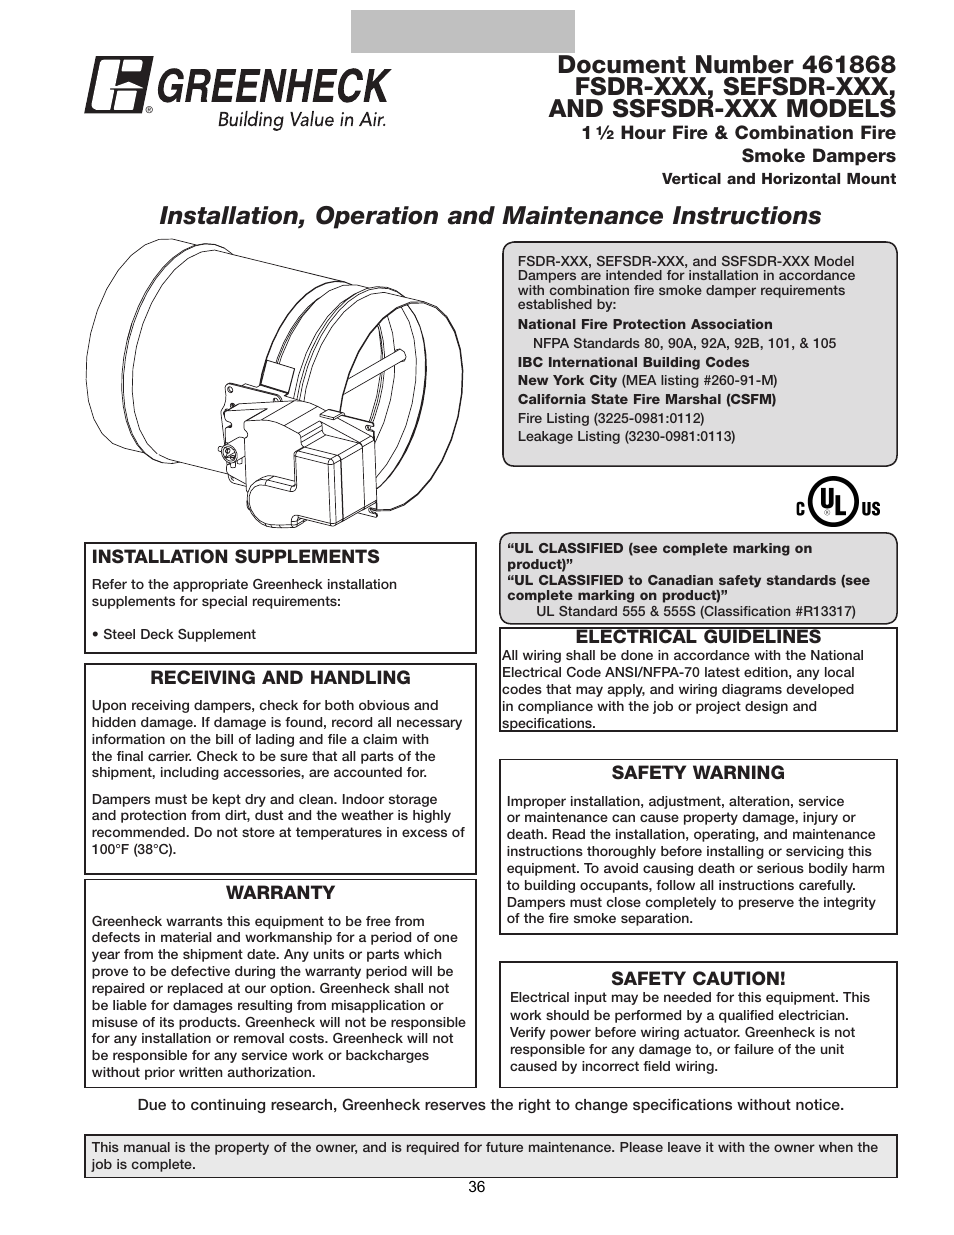 Greenheck Multi-blade Fire & Combination Fire Smoke Dampers Installation  Booklet (826249) User